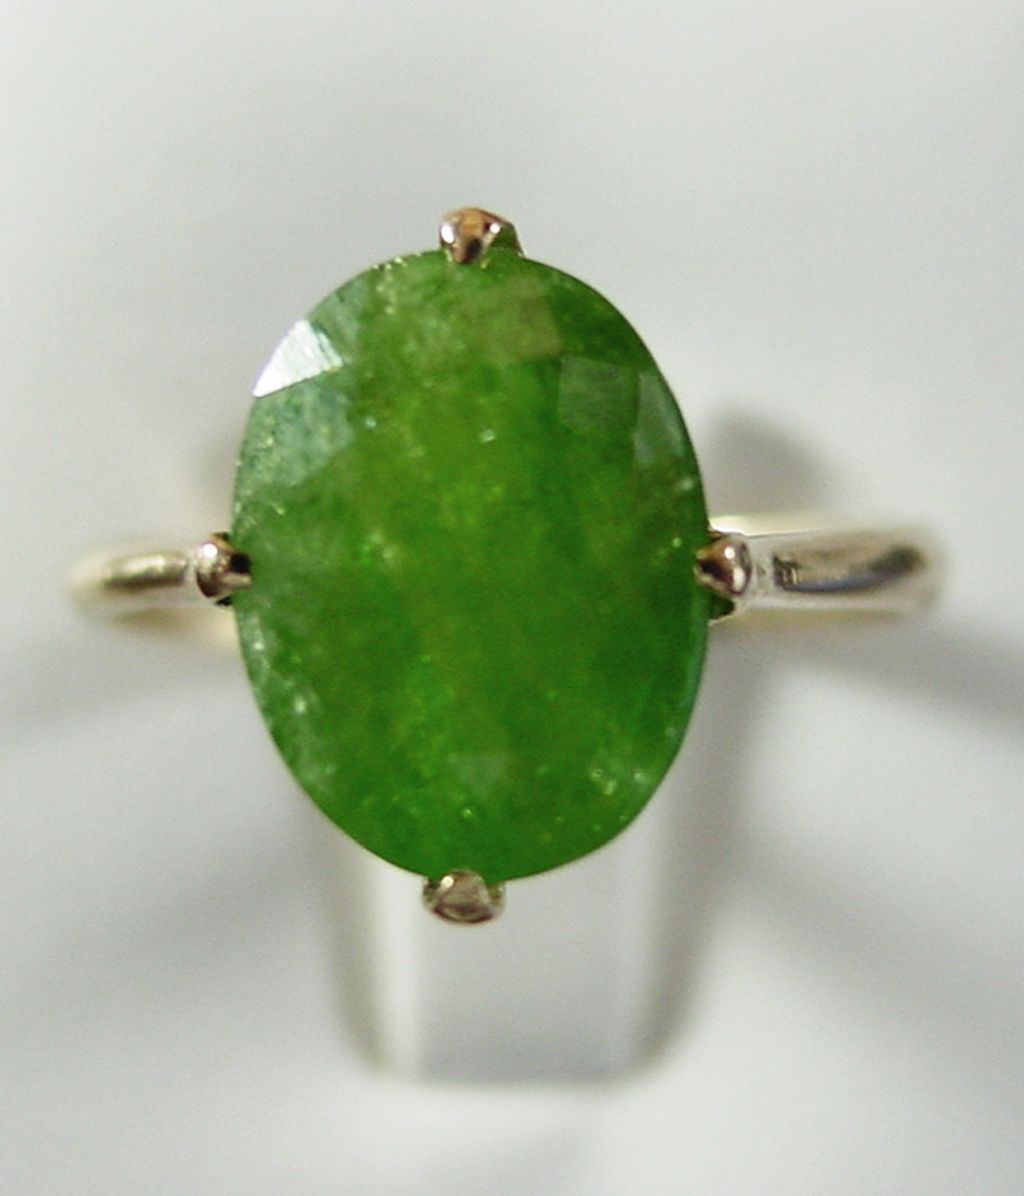 14K YG Demantoid Garnet Ring, Size 6 3/4